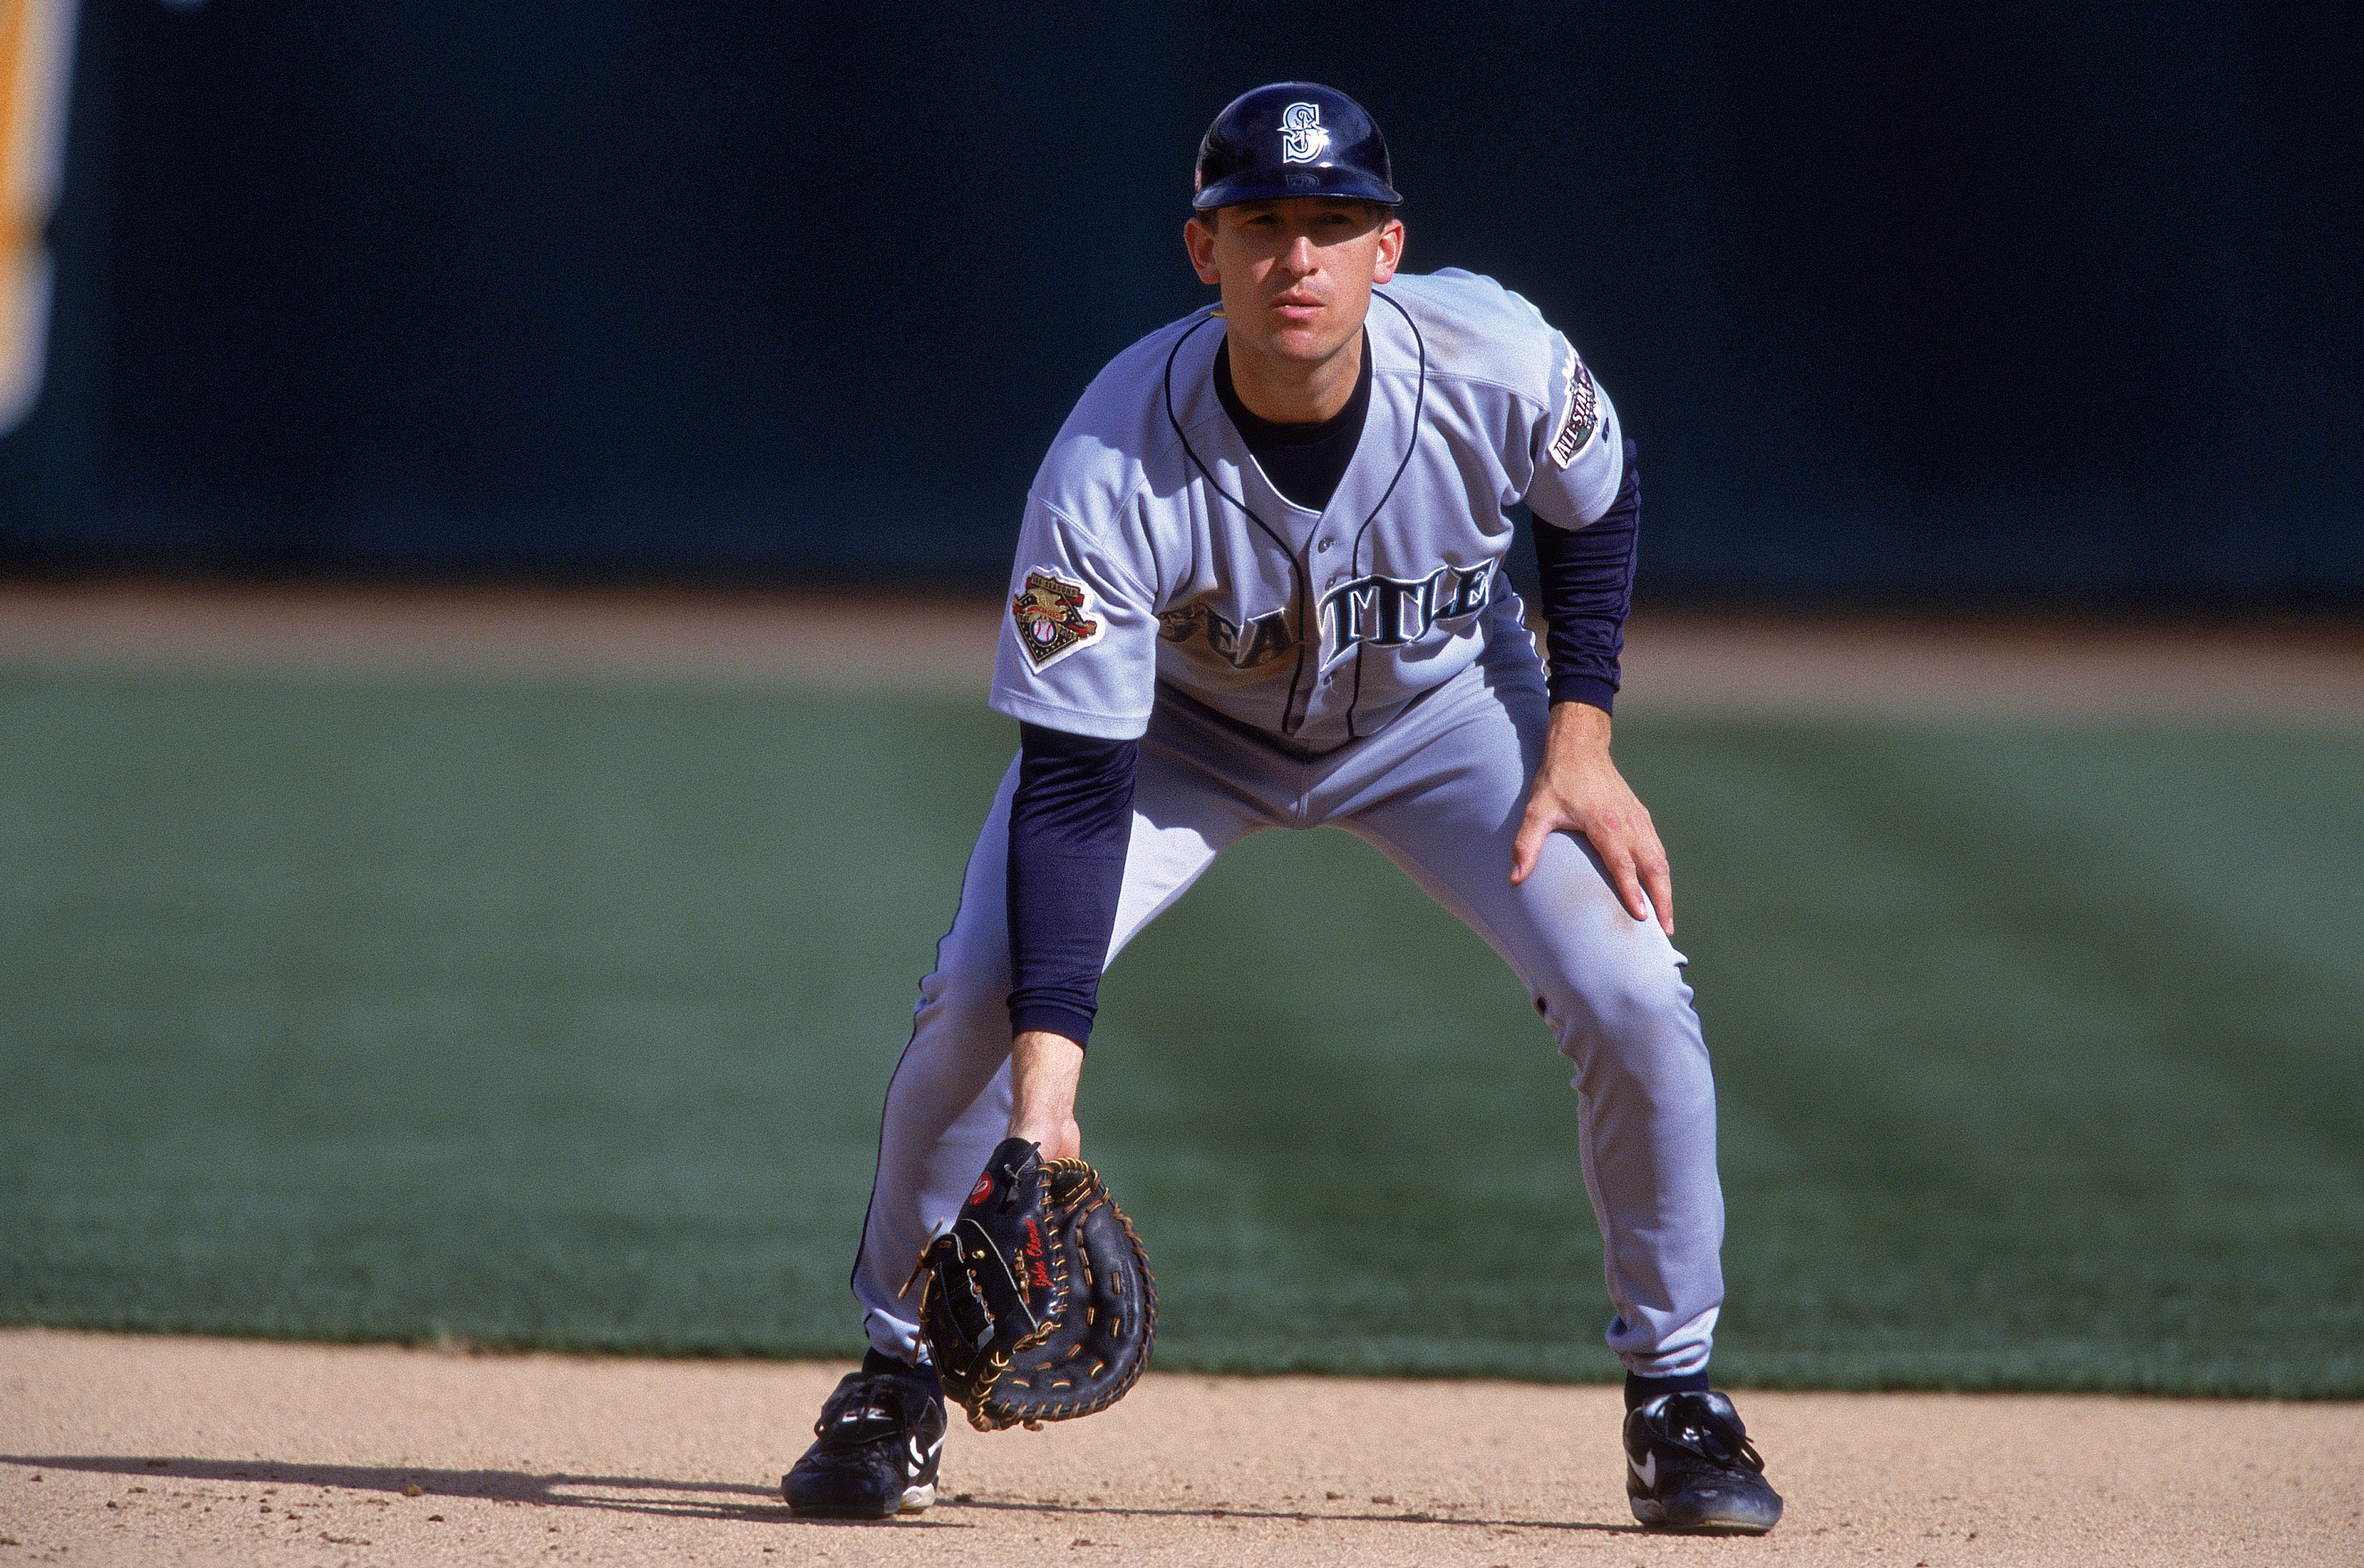 22 Sep 2001:  John Olerud #5 of the Seattle Mariners drops down to field the ball during the game against the Oakland Athletics at the Network Associates Coliseum in Oakland, California.  The Athletics defeated the Mariners 11-2.Mandatory Credit: Jed Jaco